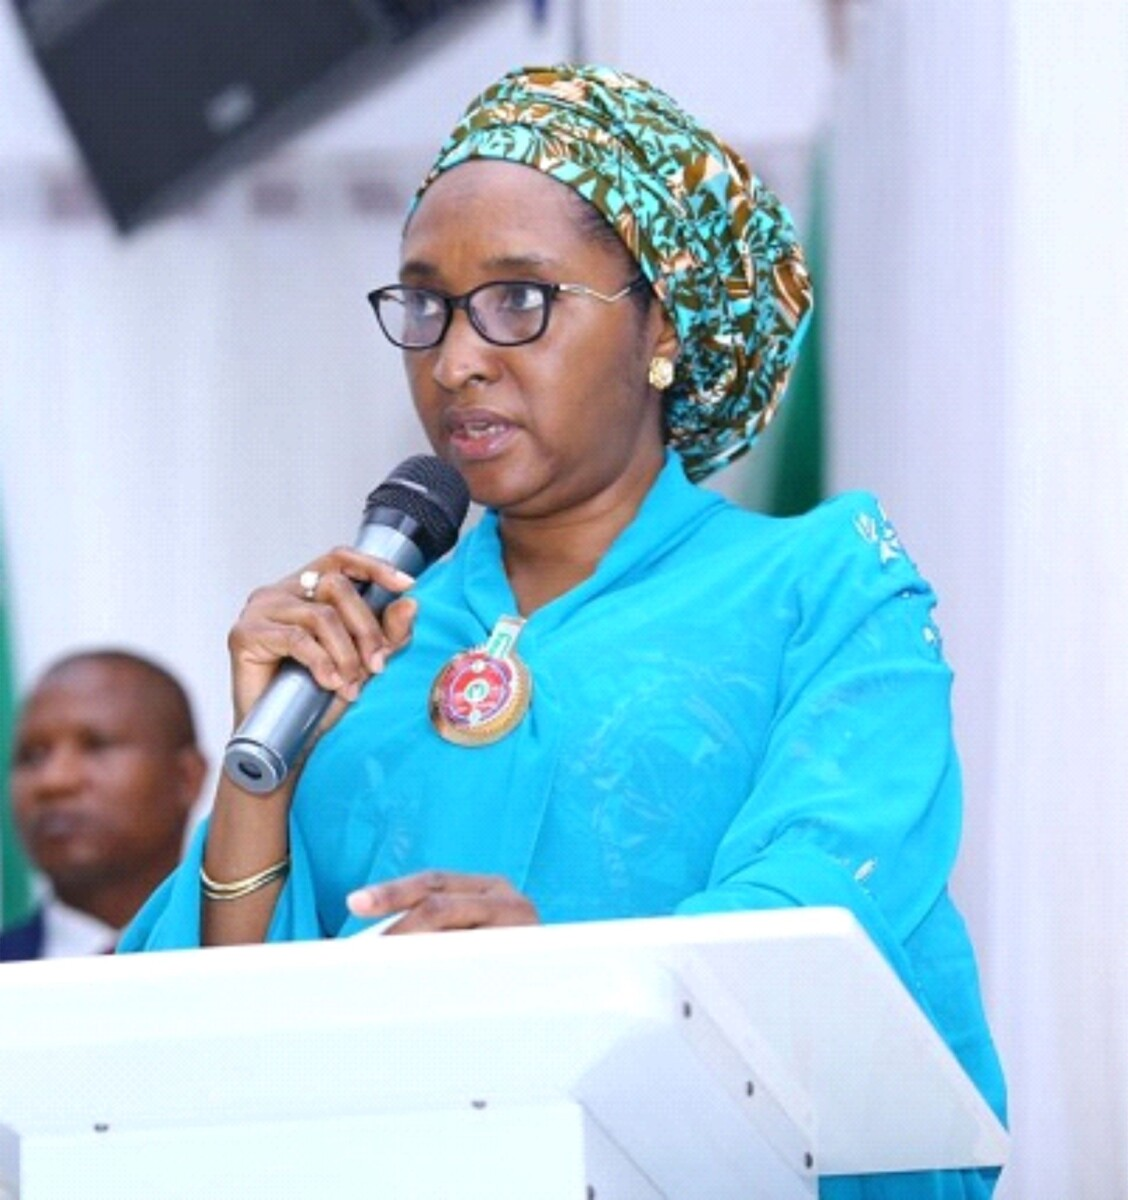 The Federal Executive Council (FEC) has proposed a 13.08 trillion Naira budget for the 2021 fiscal year.